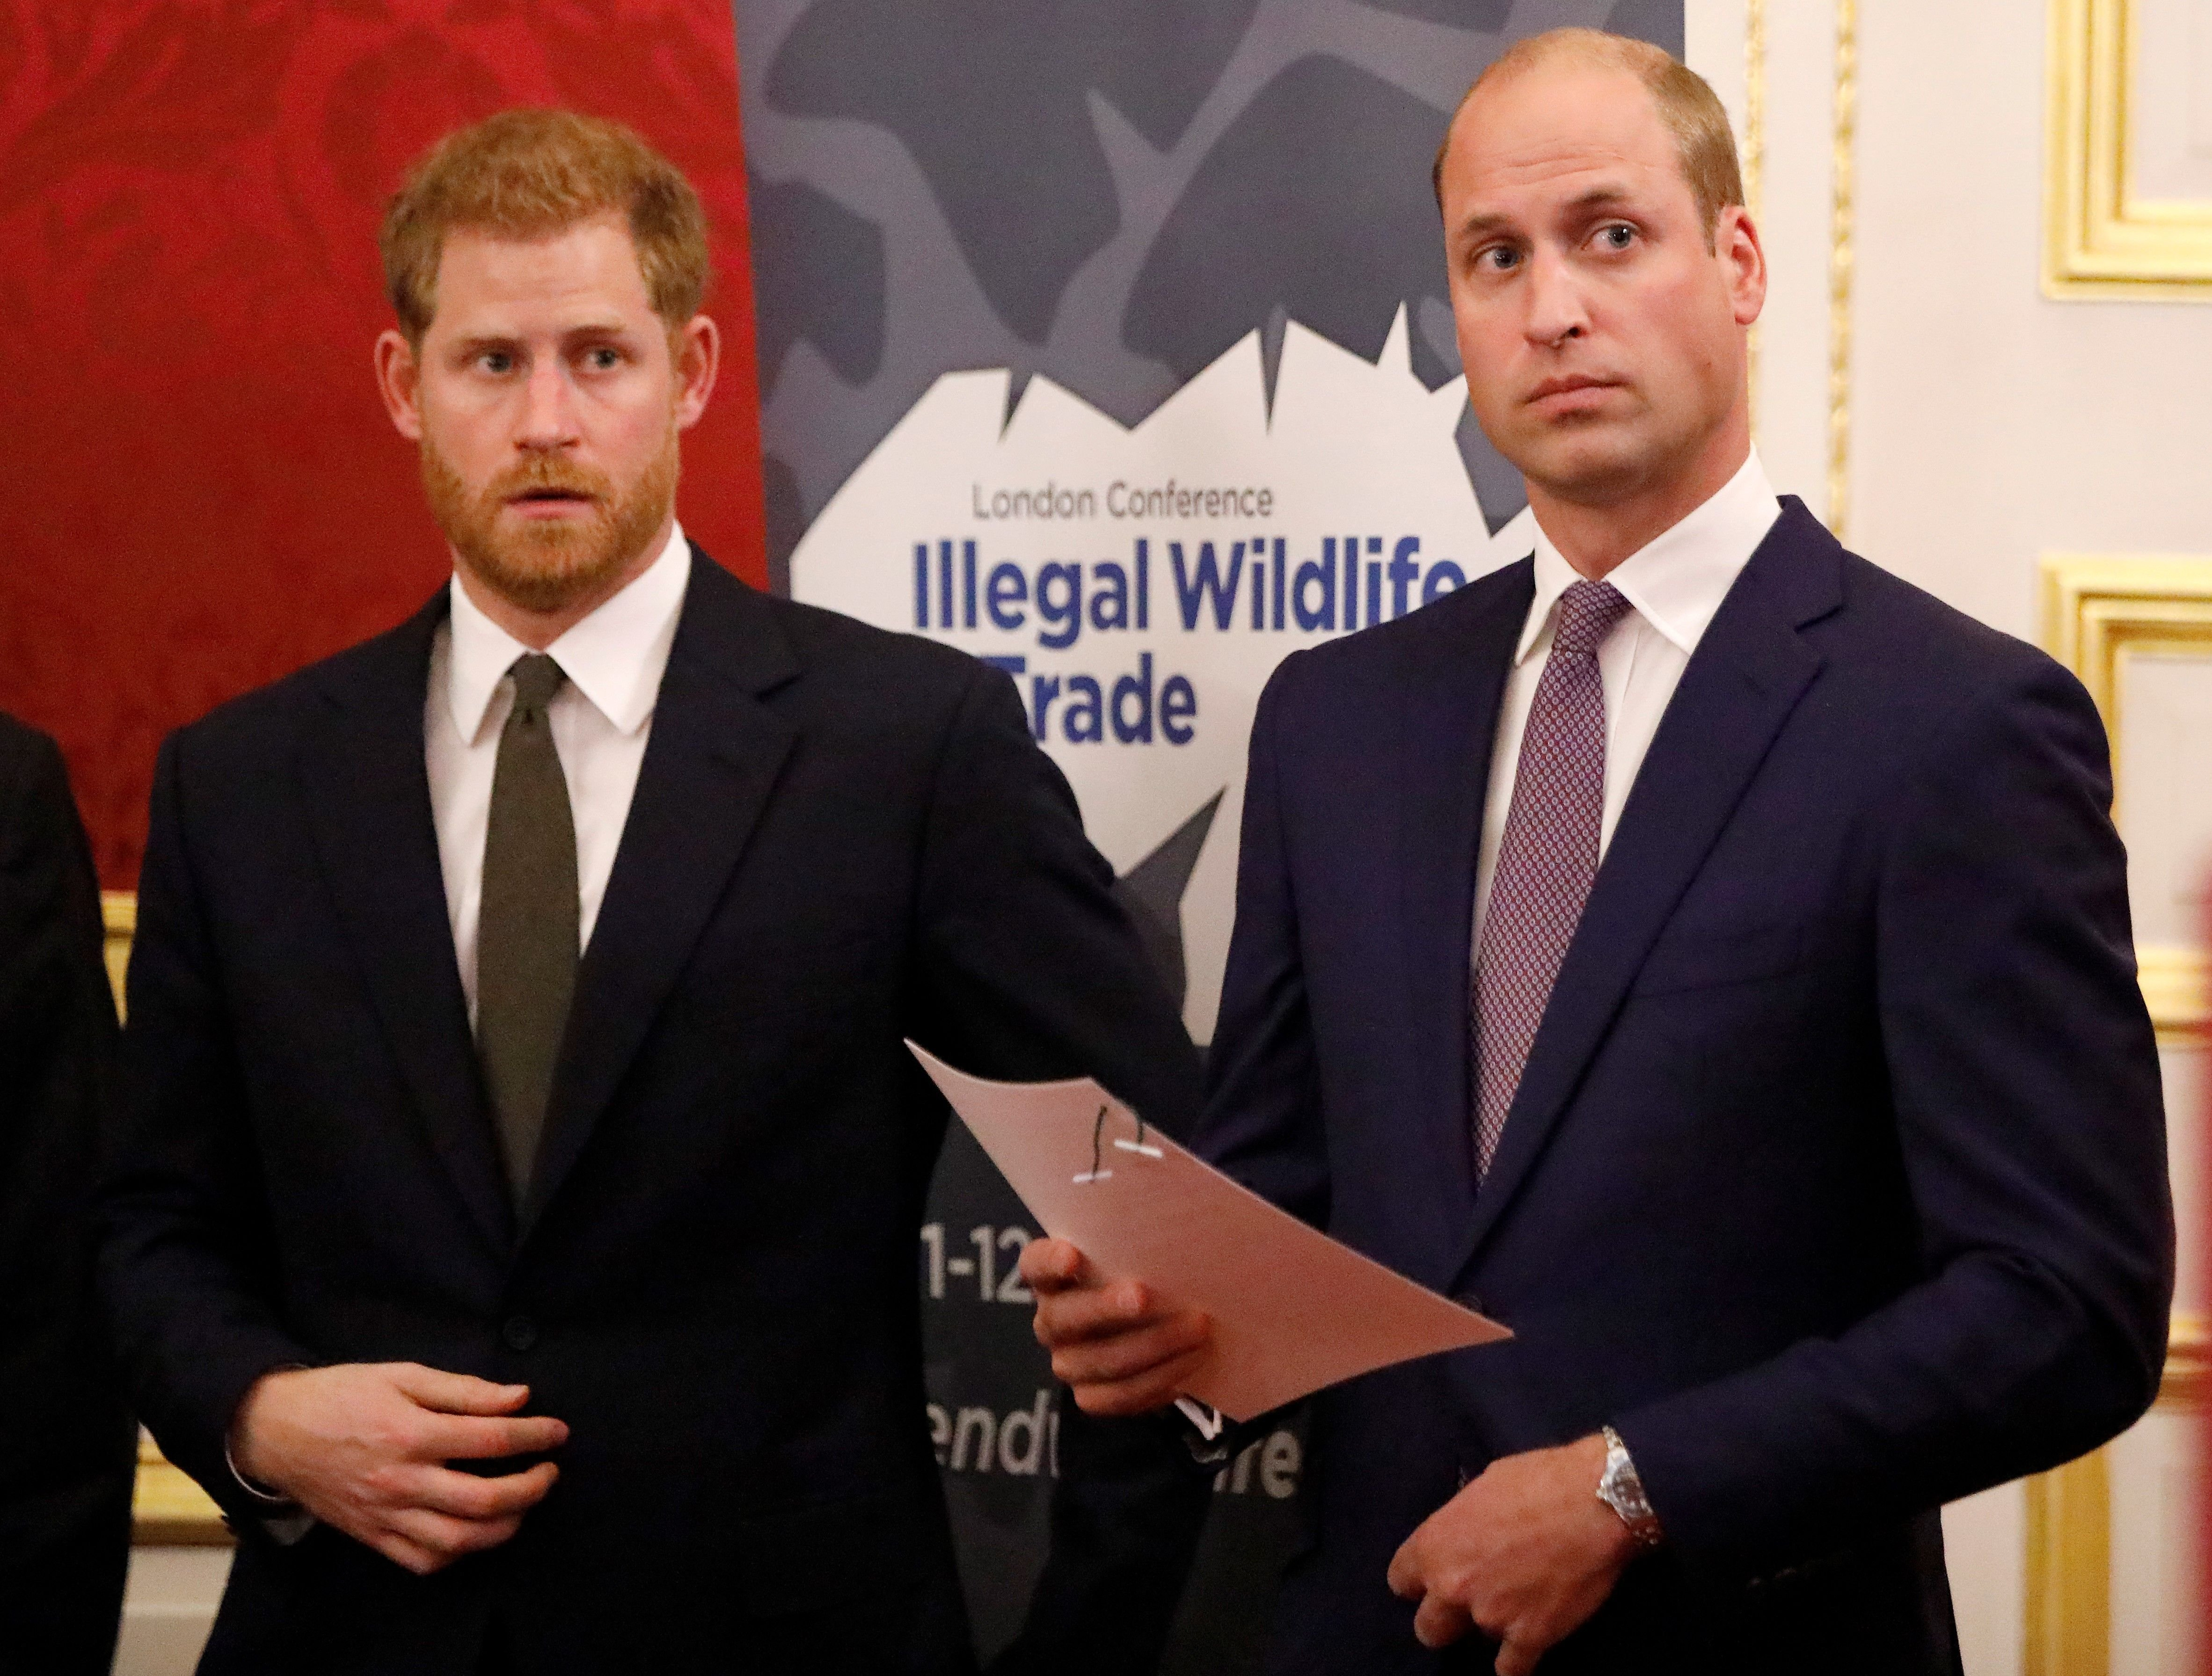 Prince William and Prince Harry hosted a reception to officially open the 2018 Illegal Wildlife Trade Conference at St James' Palace on October 10, 2018 | Photo: Getty Images